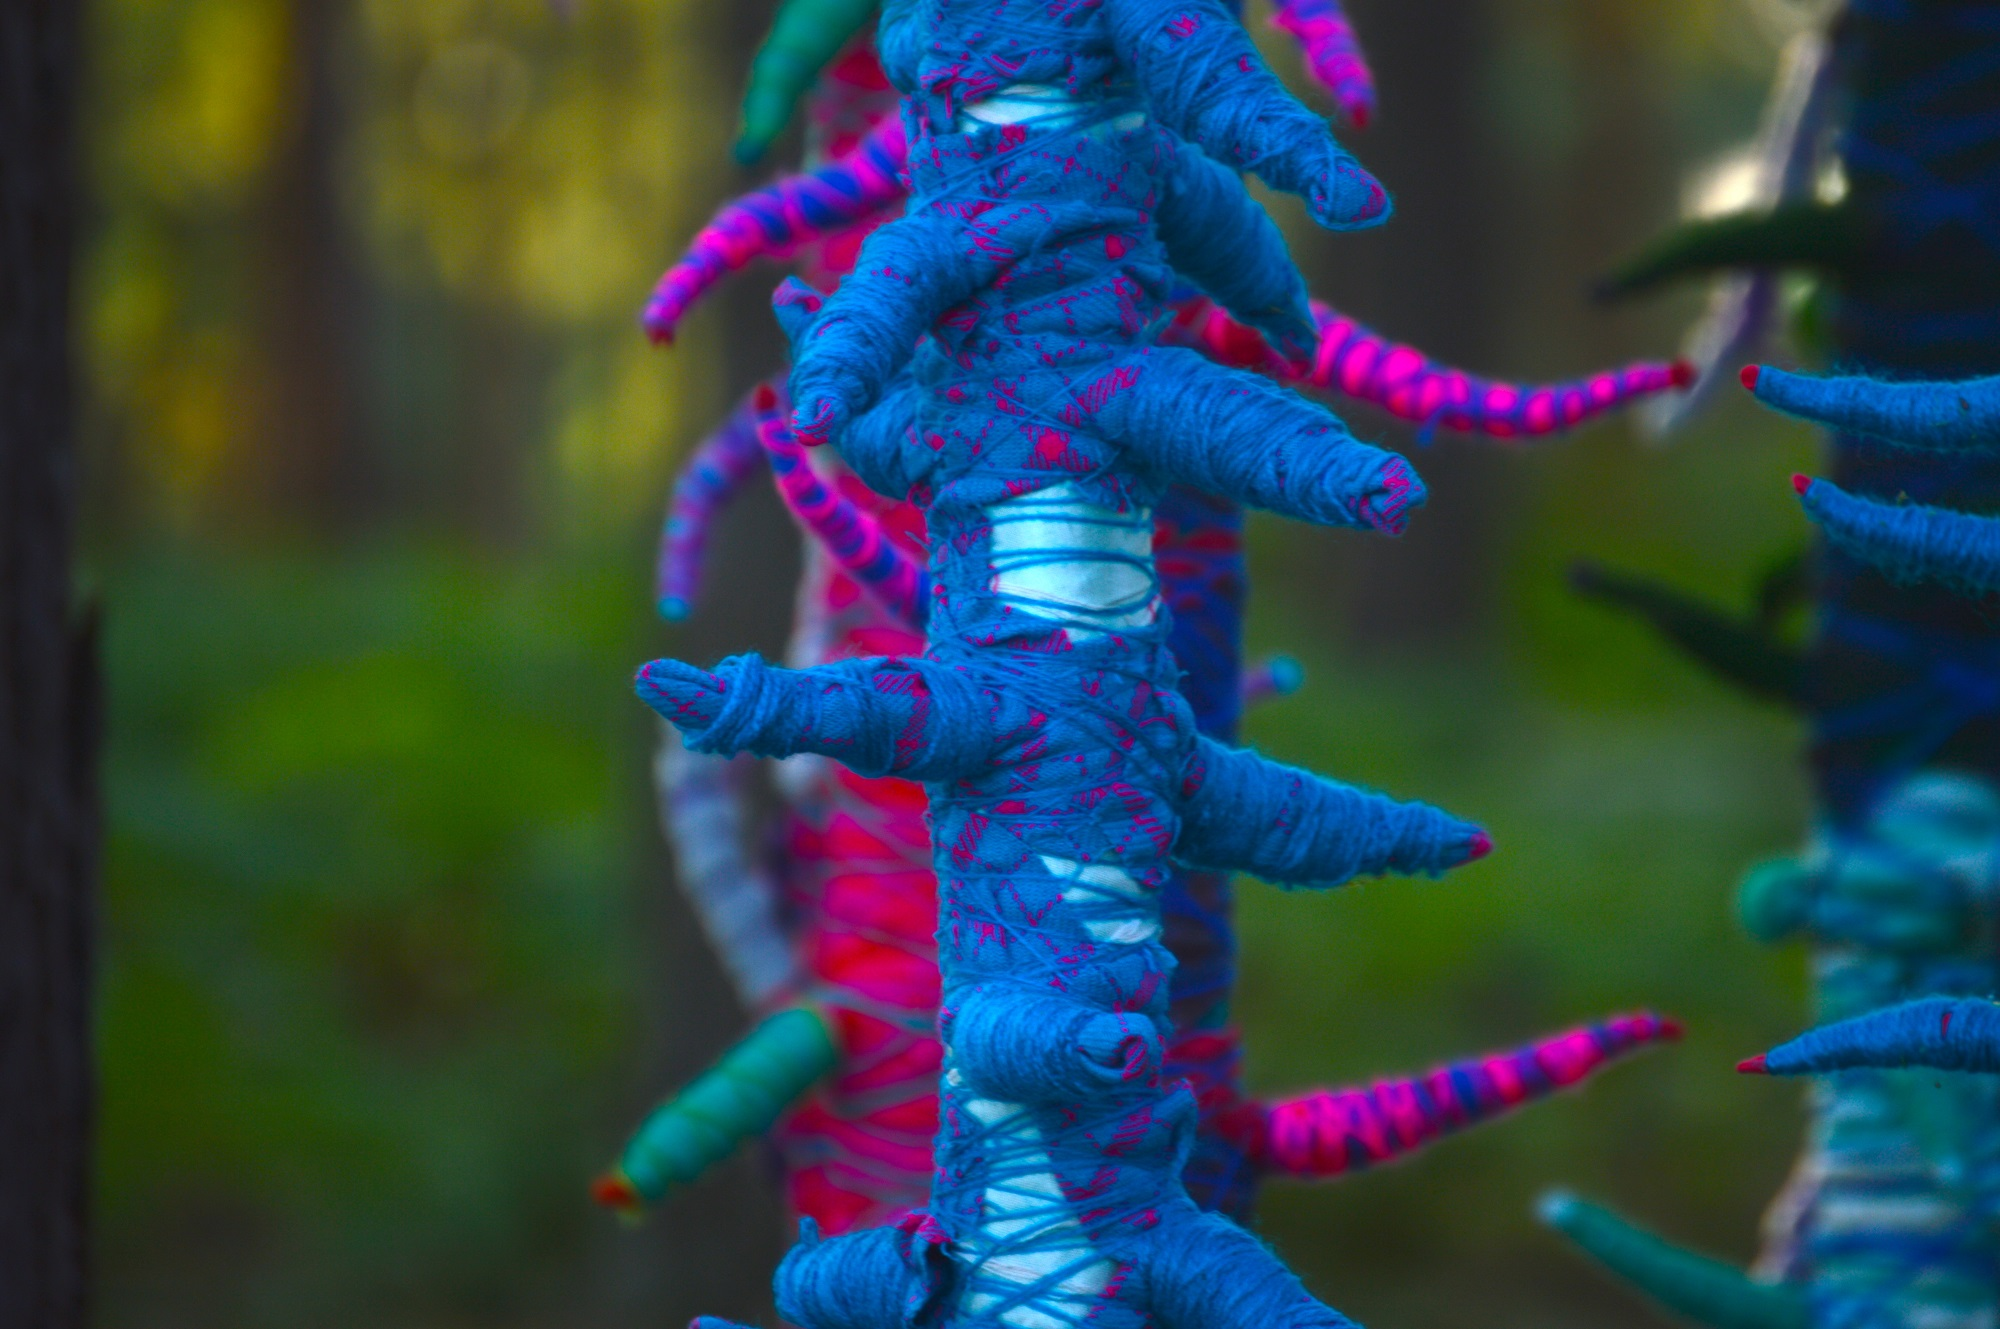 Spine Trees by by Tara Kennedy, Annette Mills, Delia Salter and Susan Stringfellow